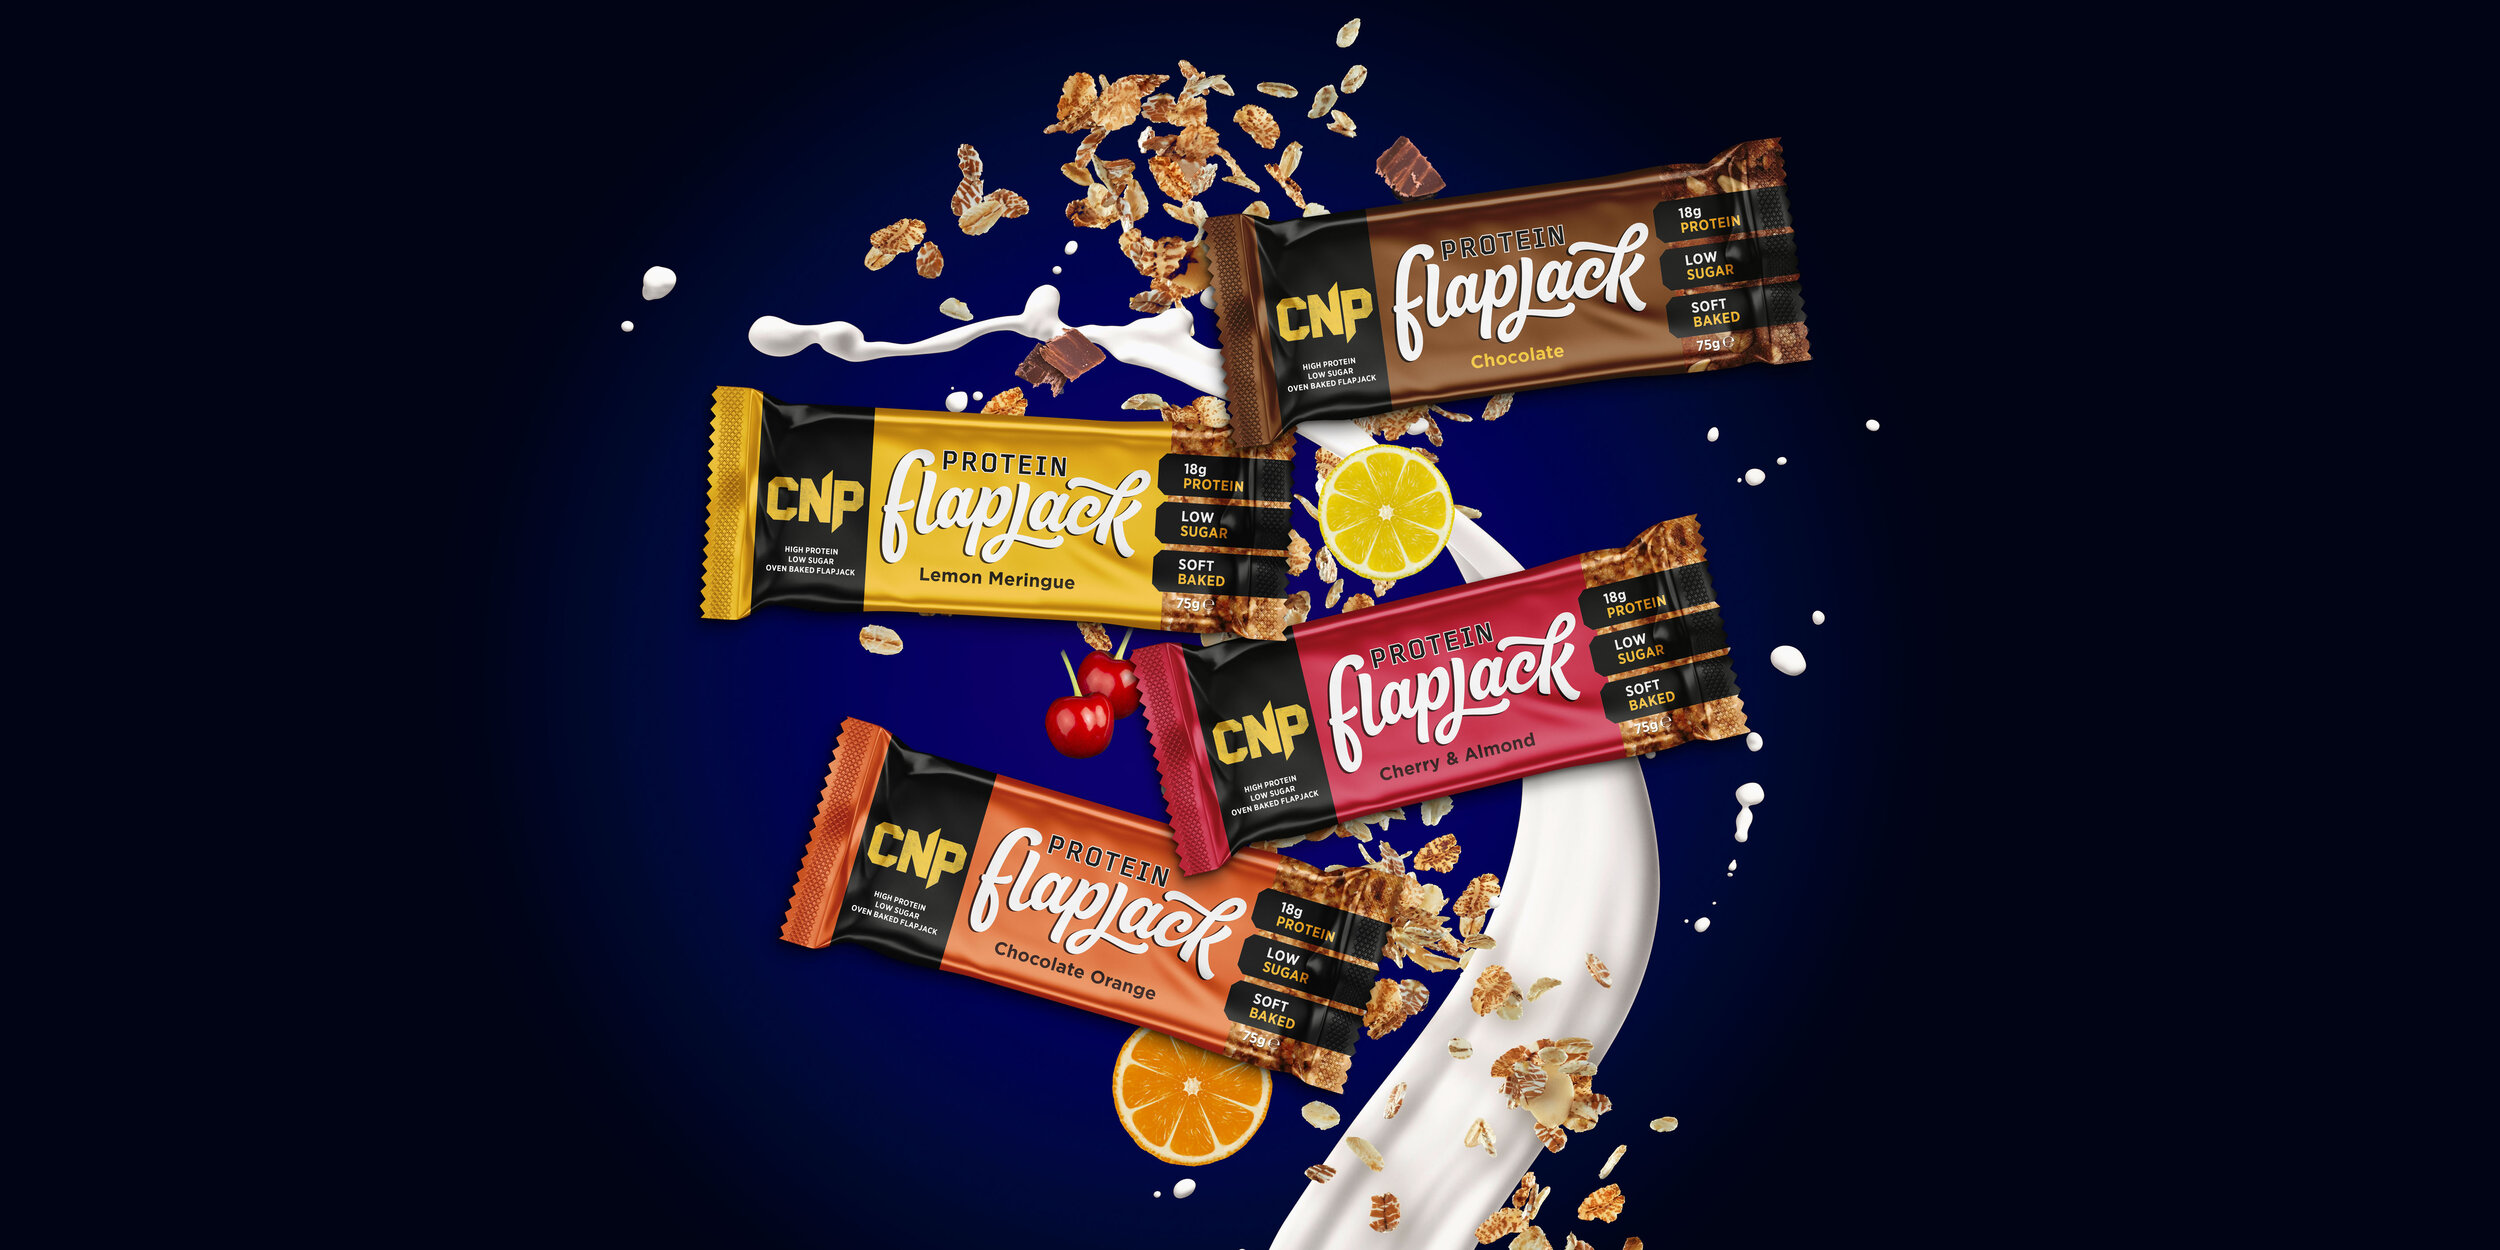 CNP Protein Flapjack Packaging Design